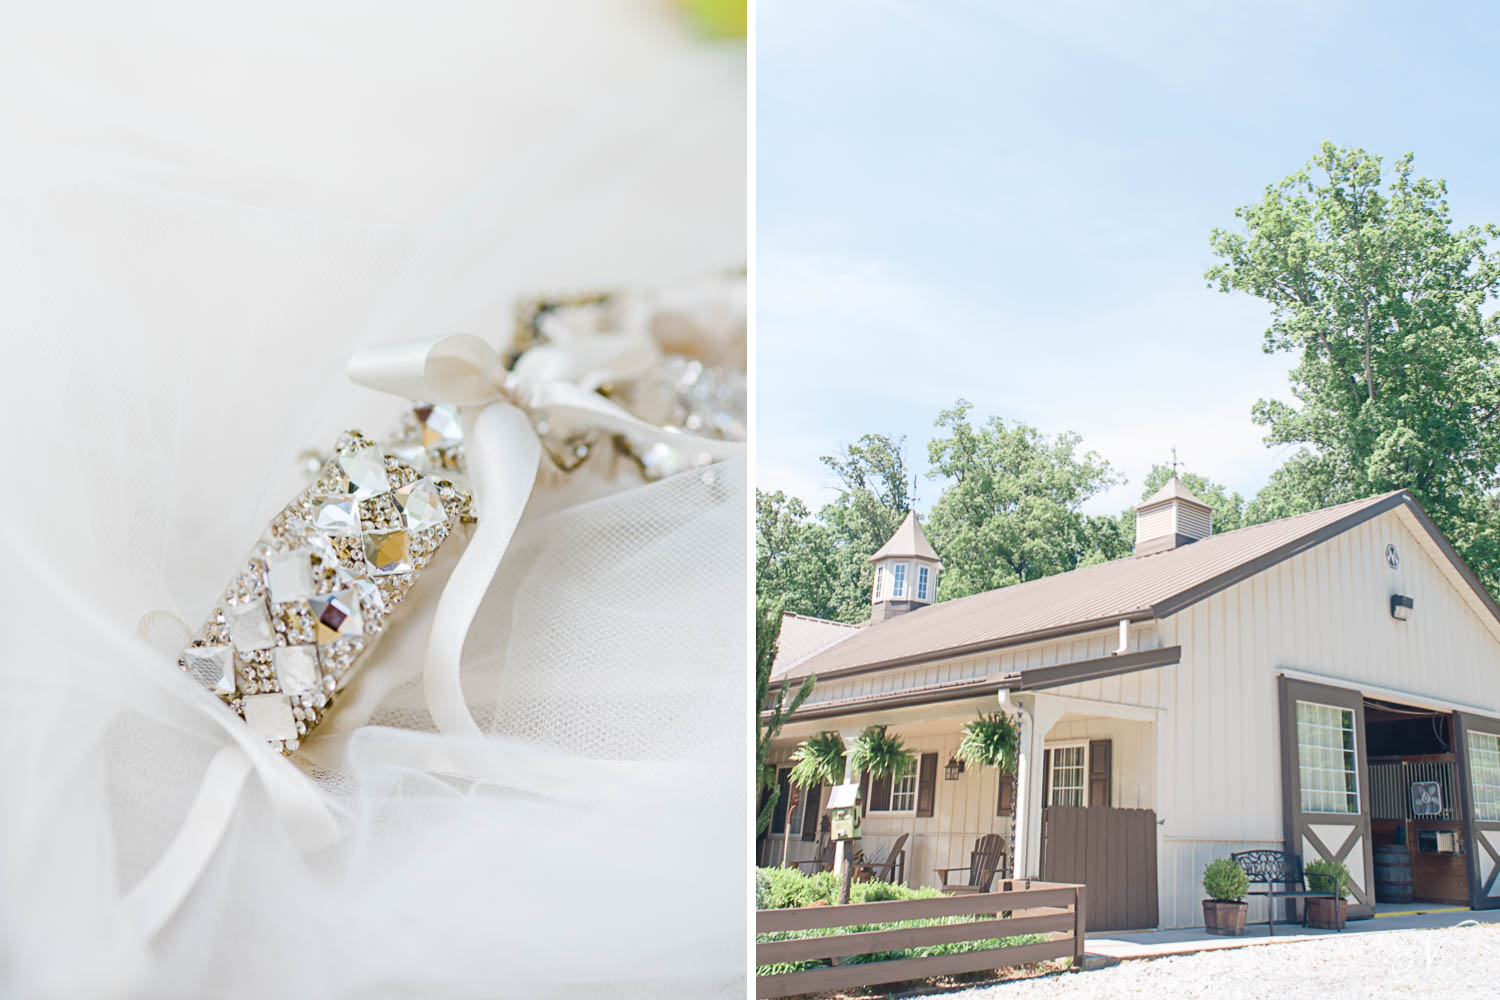 SUNDANCE FARM wedding venue and blingy garter